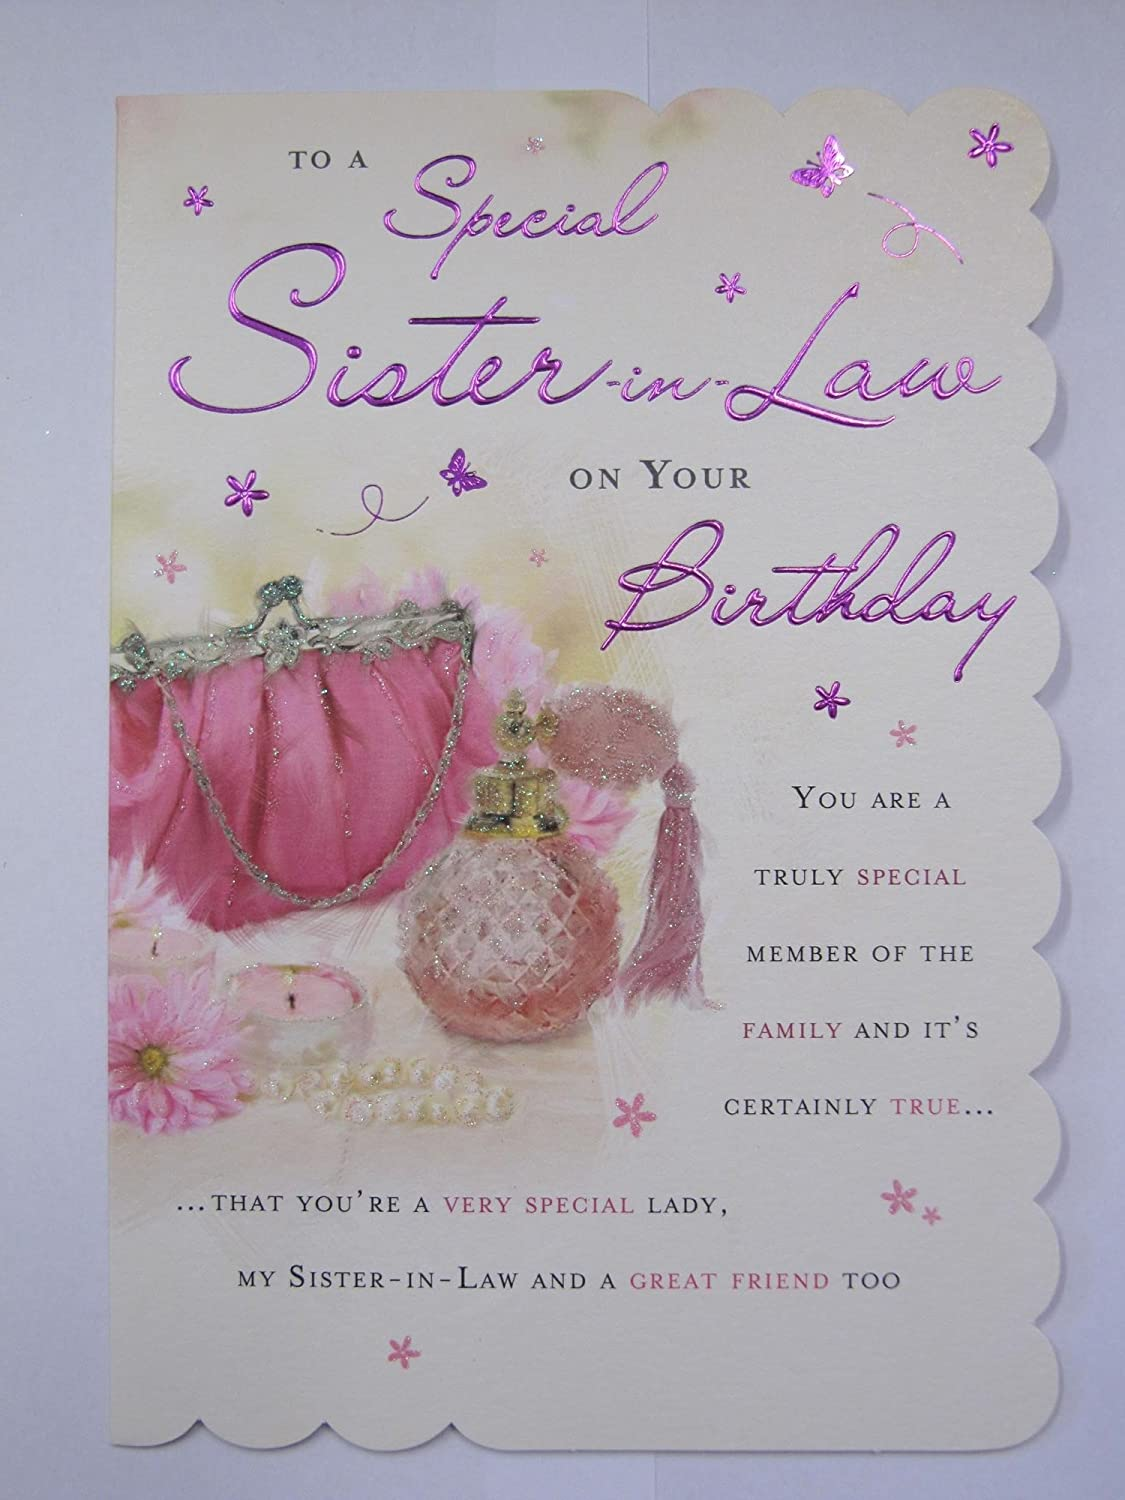 STUNNING TOP RANGE WONDERFUL WORDS 5 VERSE SISTER IN LAW BIRTHDAY GREETING CARD Amazoncouk Kitchen Home